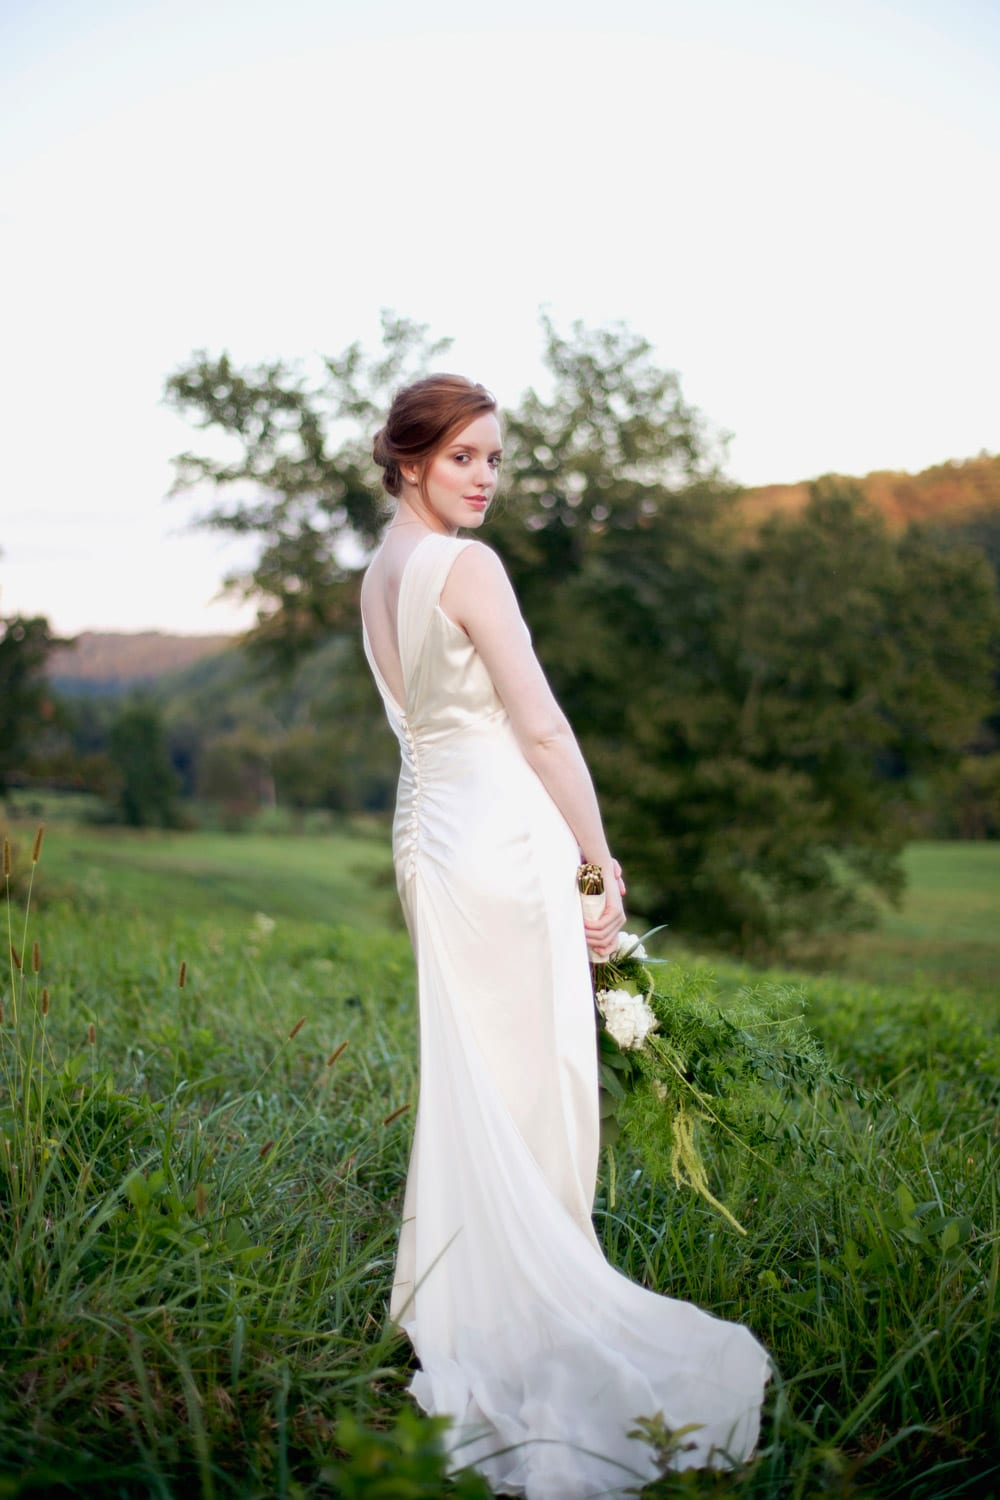 Bride poses in the pasture with flowers